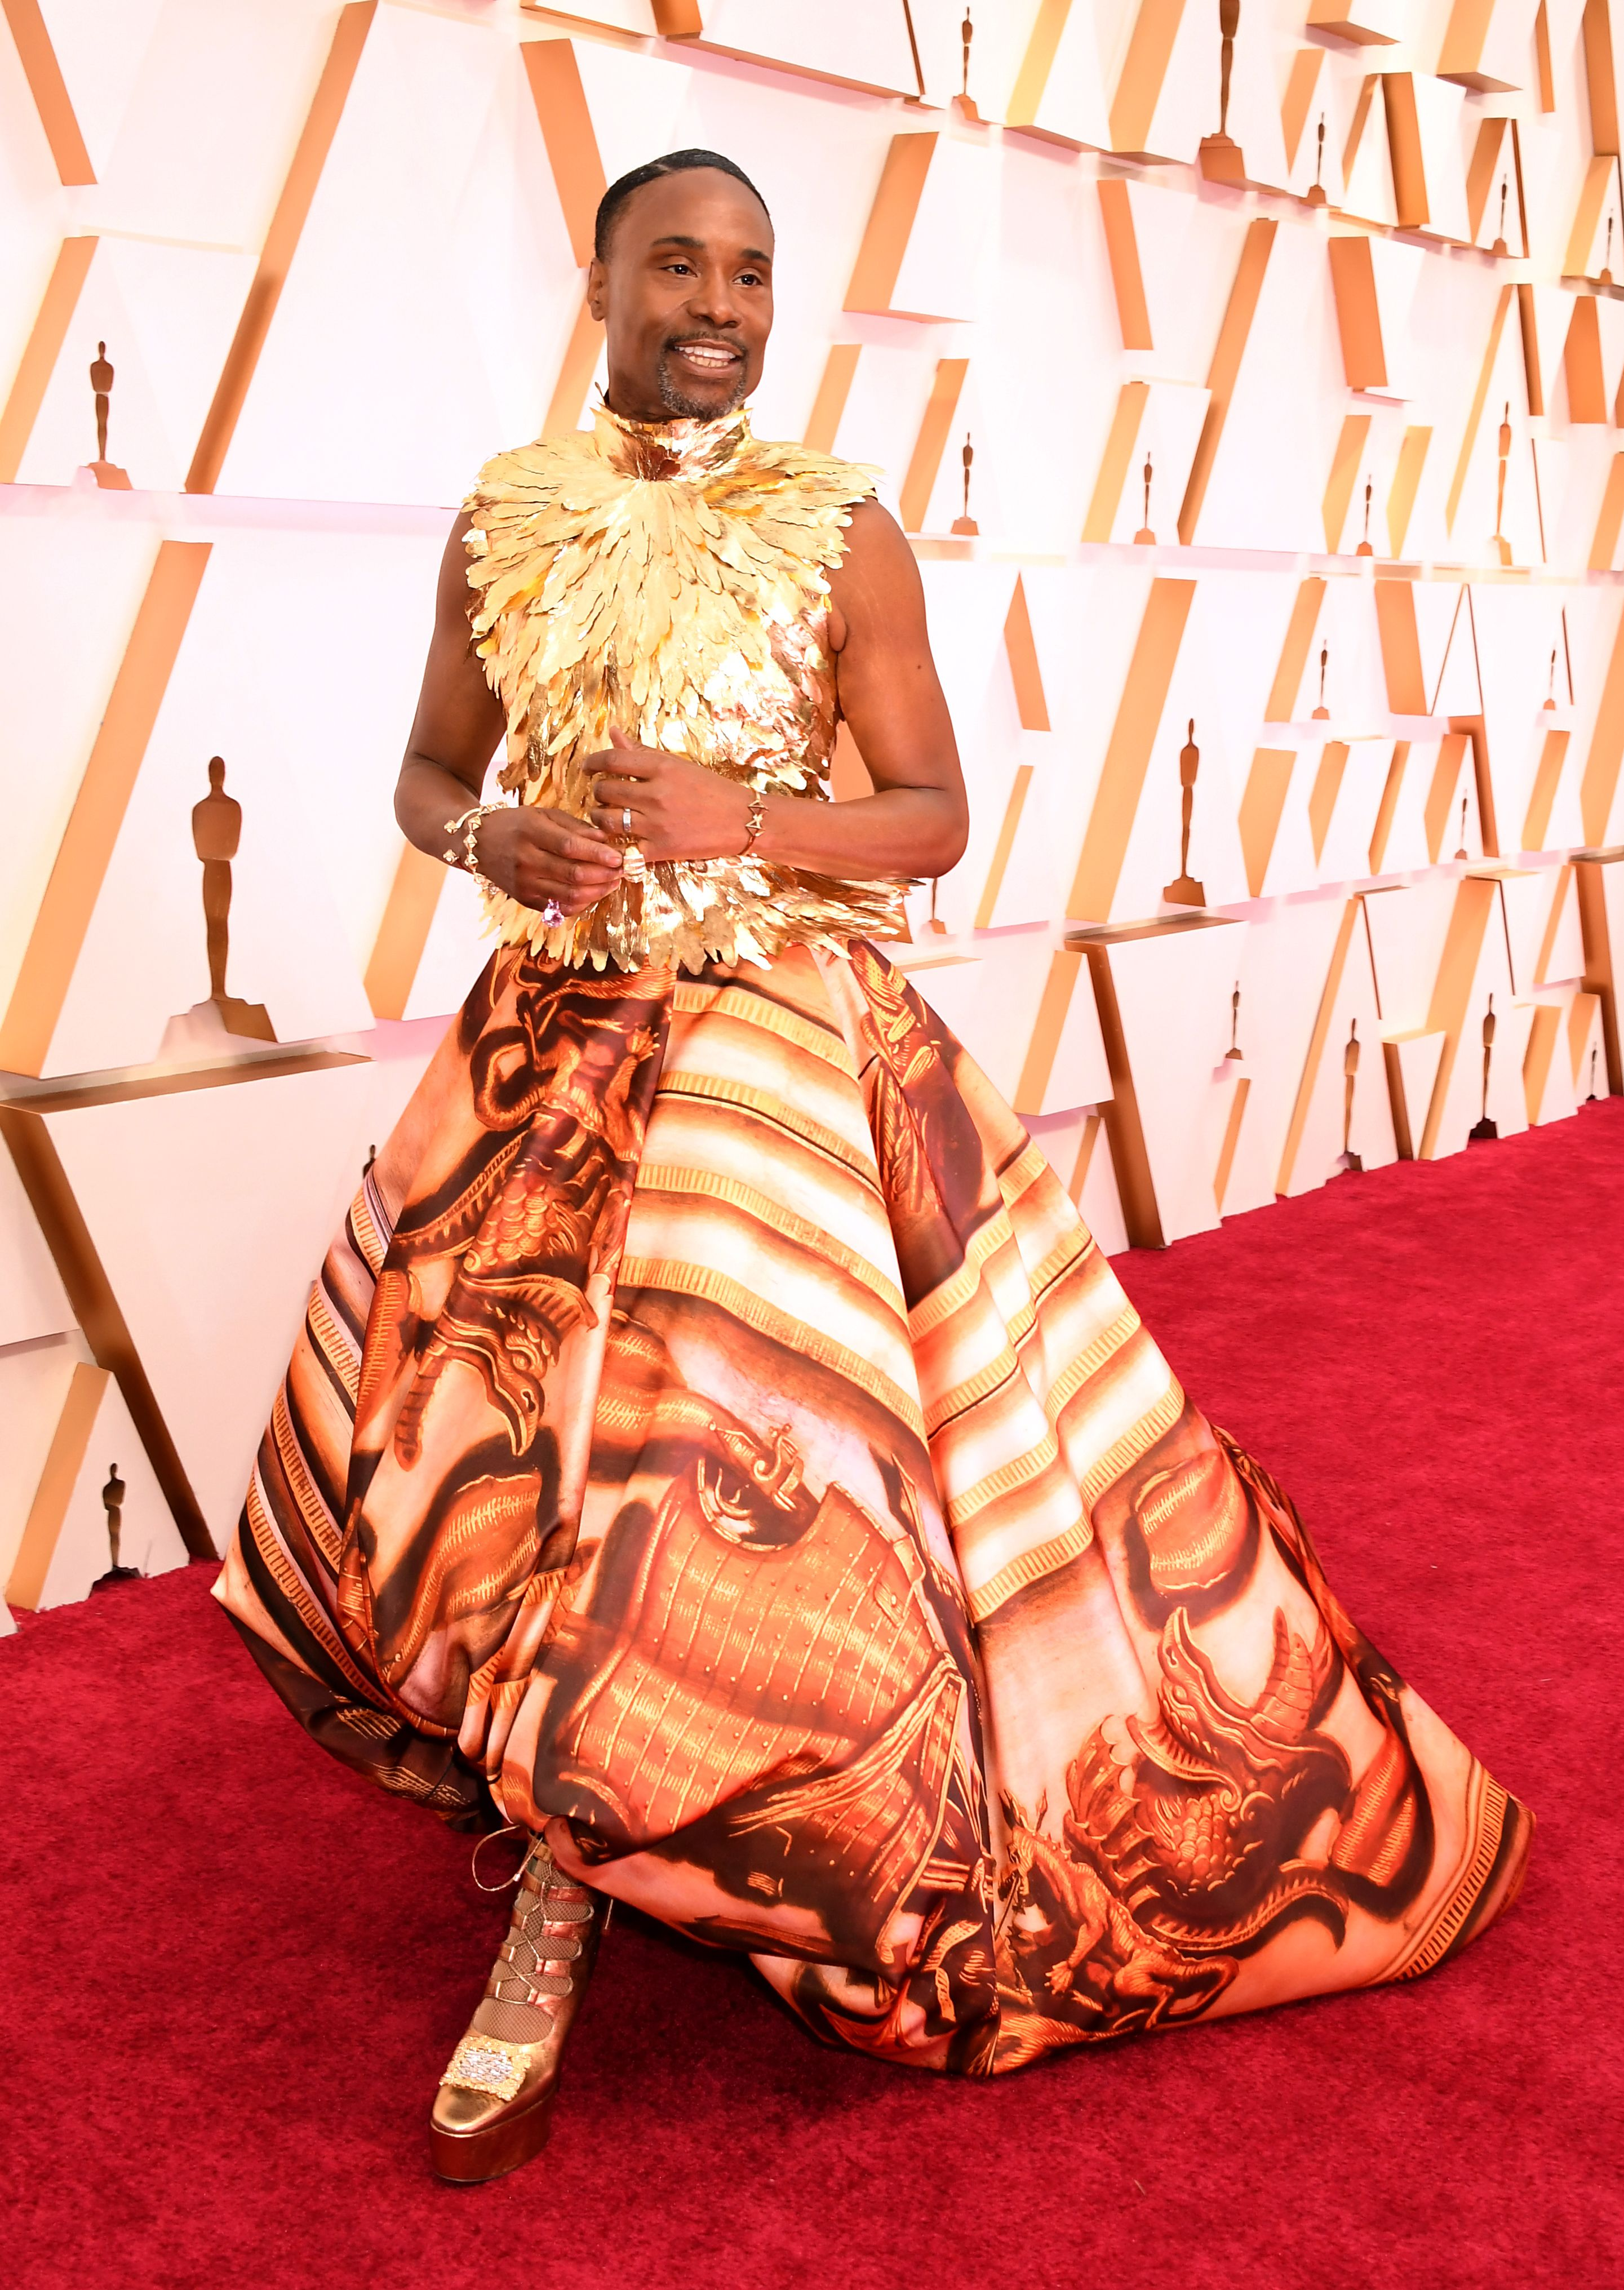 Billy Porter at the Academy Awards on February 09, 2020 in Hollywood, California.   Photo: Getty Images